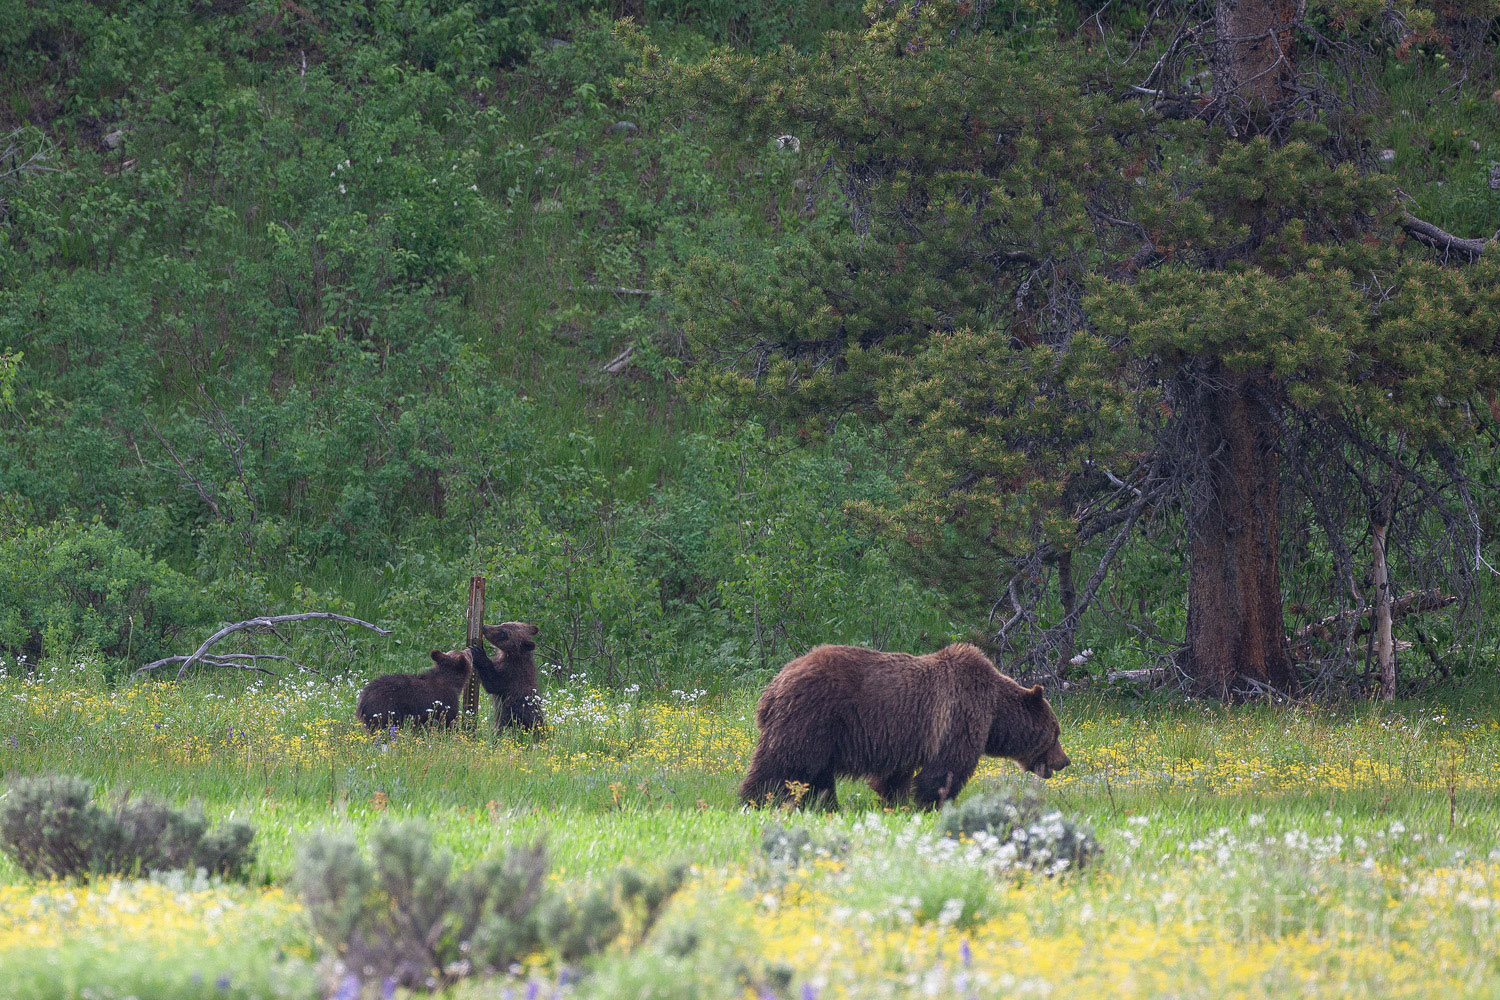 grand teton national park, 2011, grizzly bear, 399, photograph, image, summer, photo